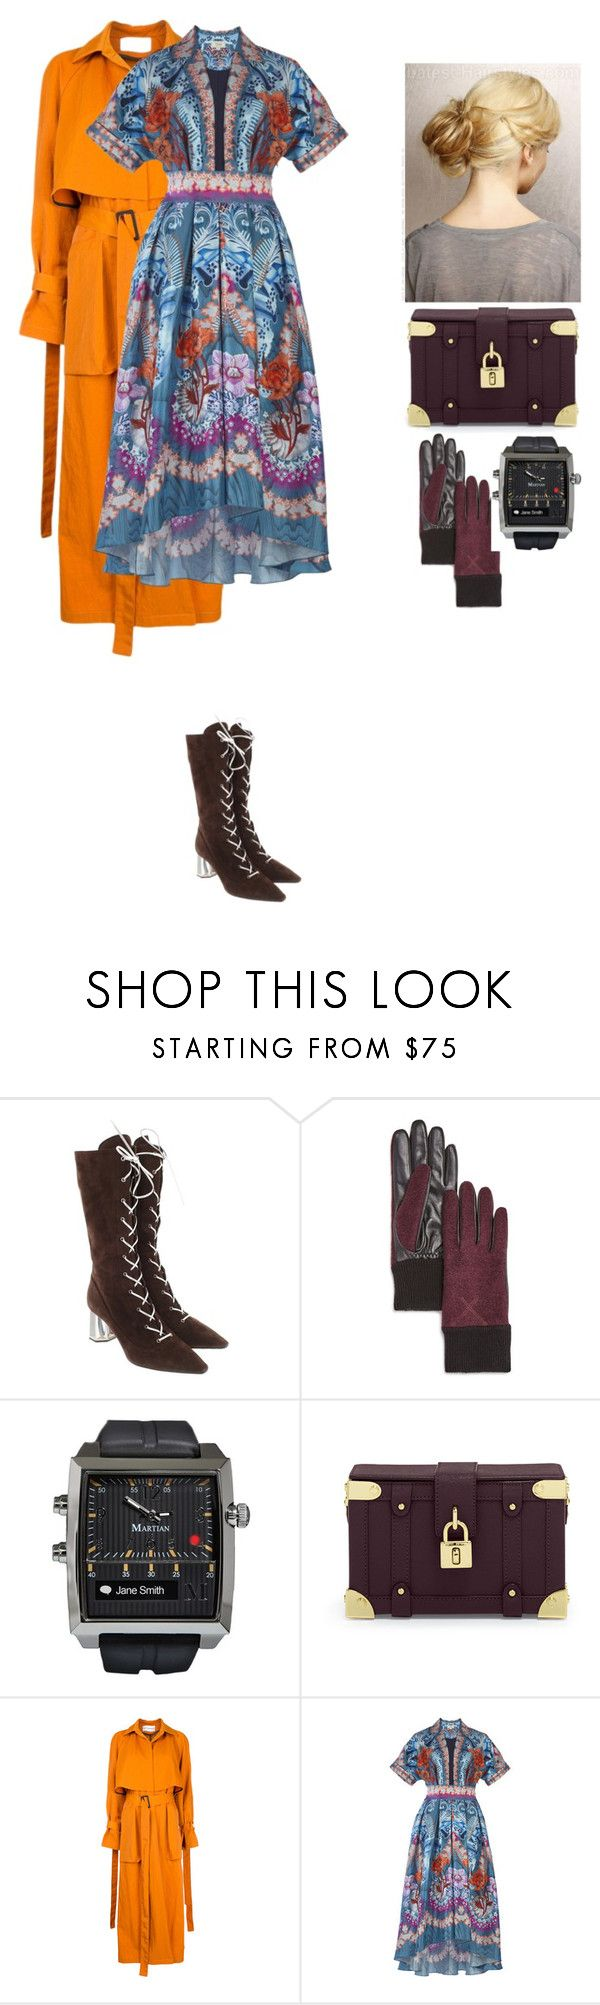 """""""Untitled #478"""" by amory-eyre ❤ liked on Polyvore featuring Miu Miu, UGG, Martian, Henri Bendel, Walk of Shame and Temperley London"""